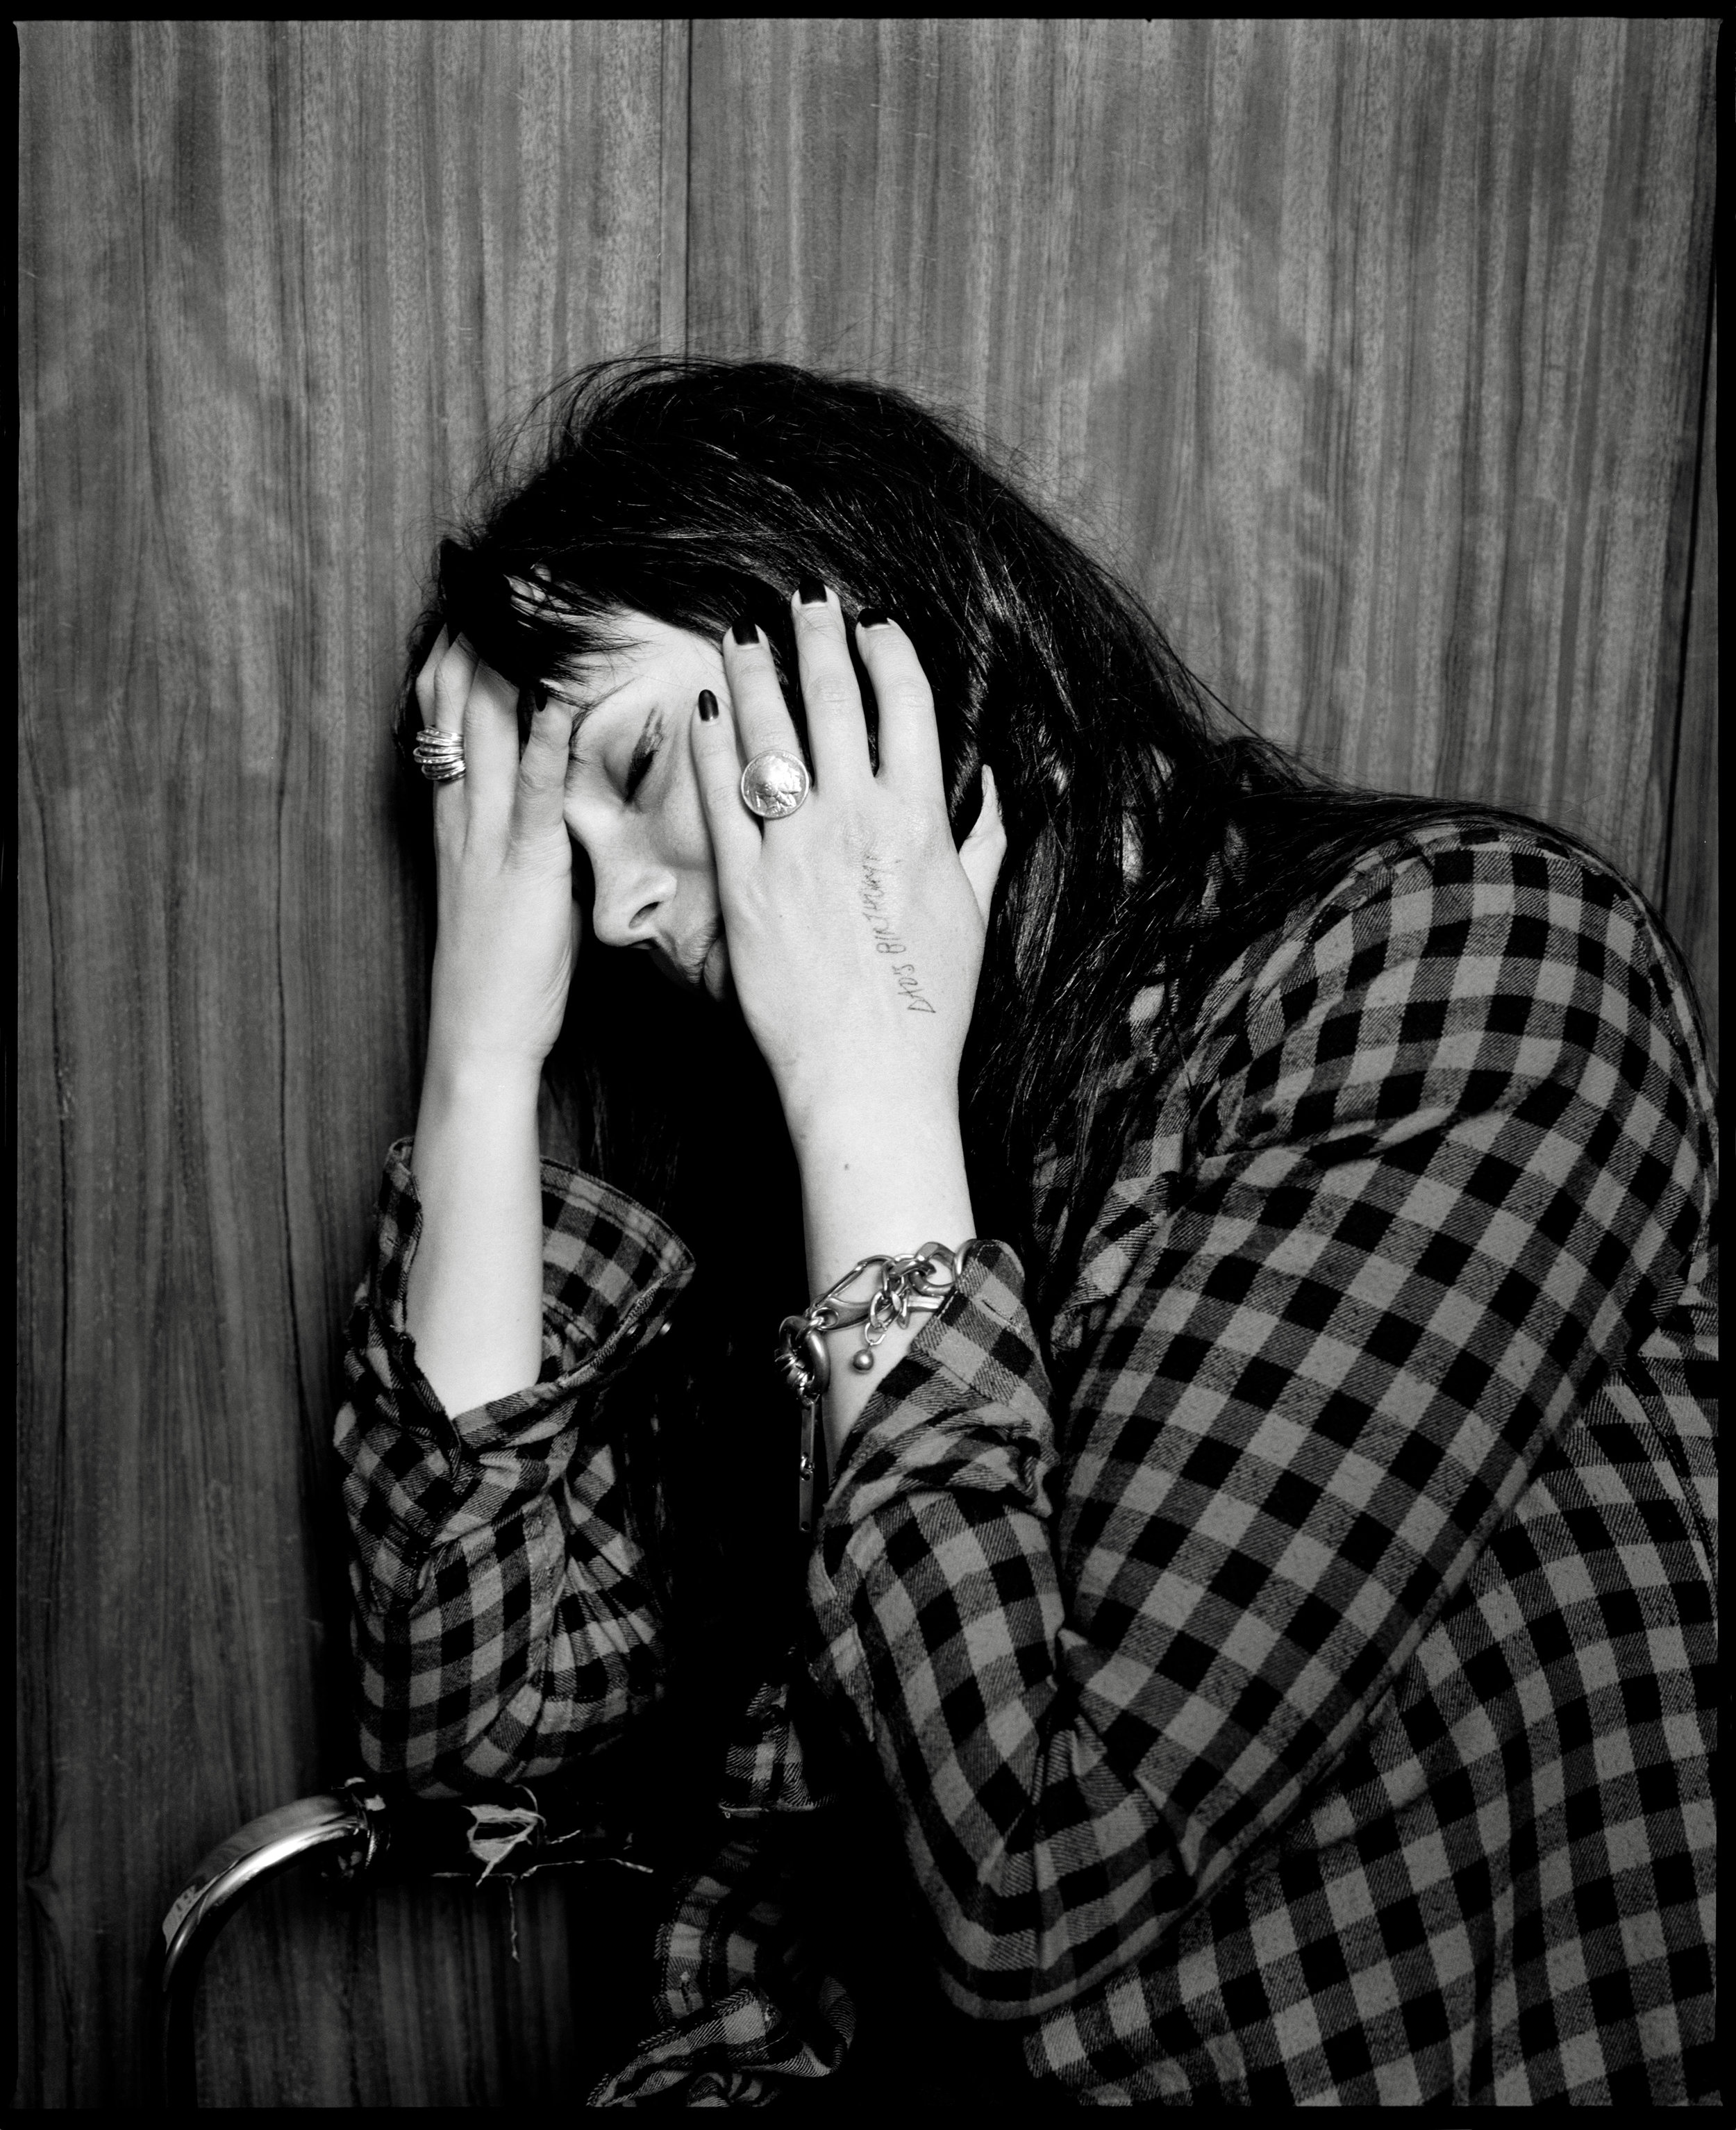 Alison Mosshart /<br>The Kills, The Dead Weather